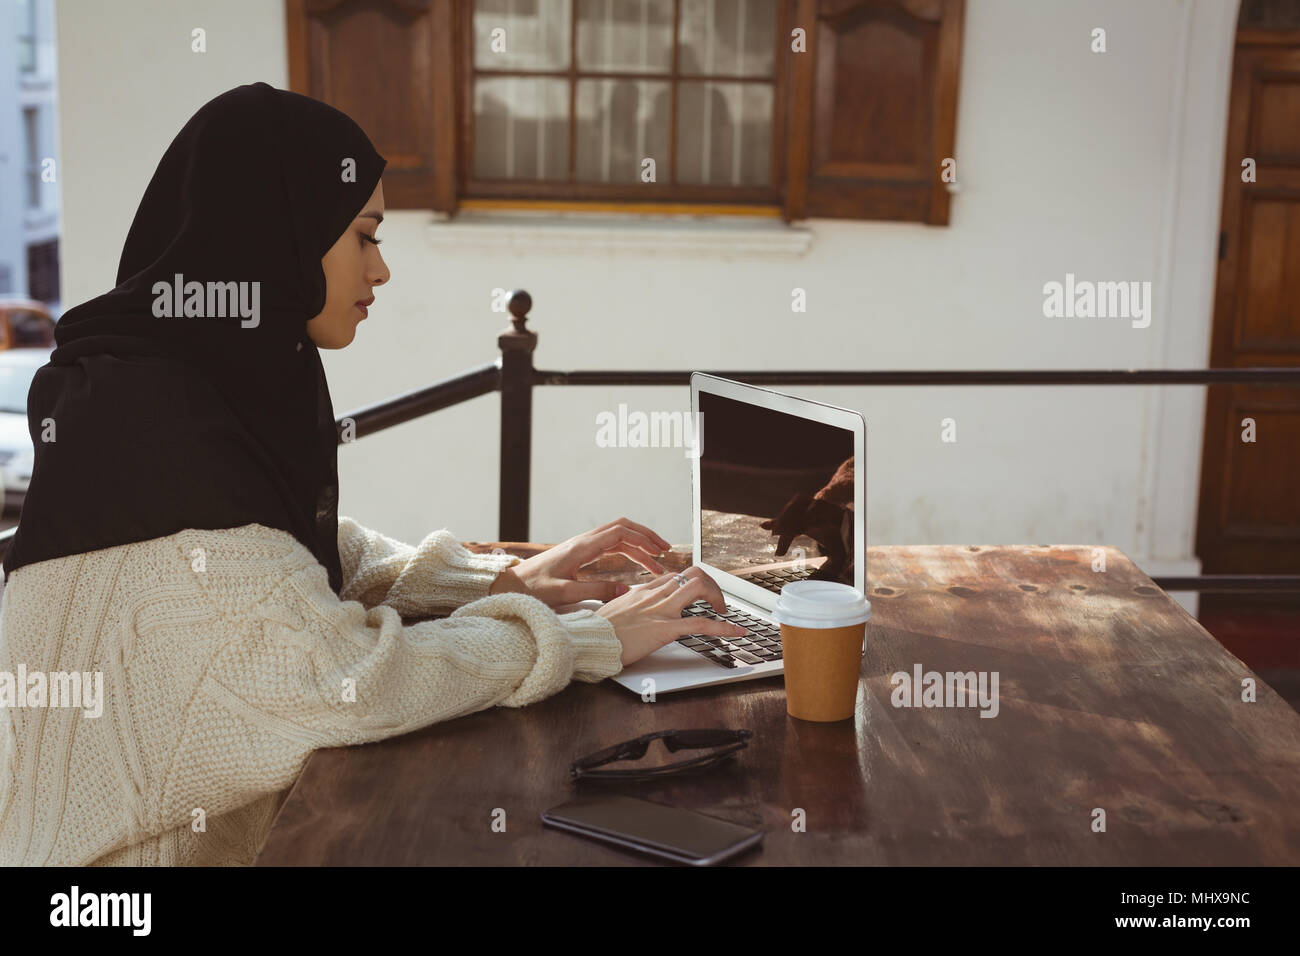 Hijab woman using laptop on table - Stock Image